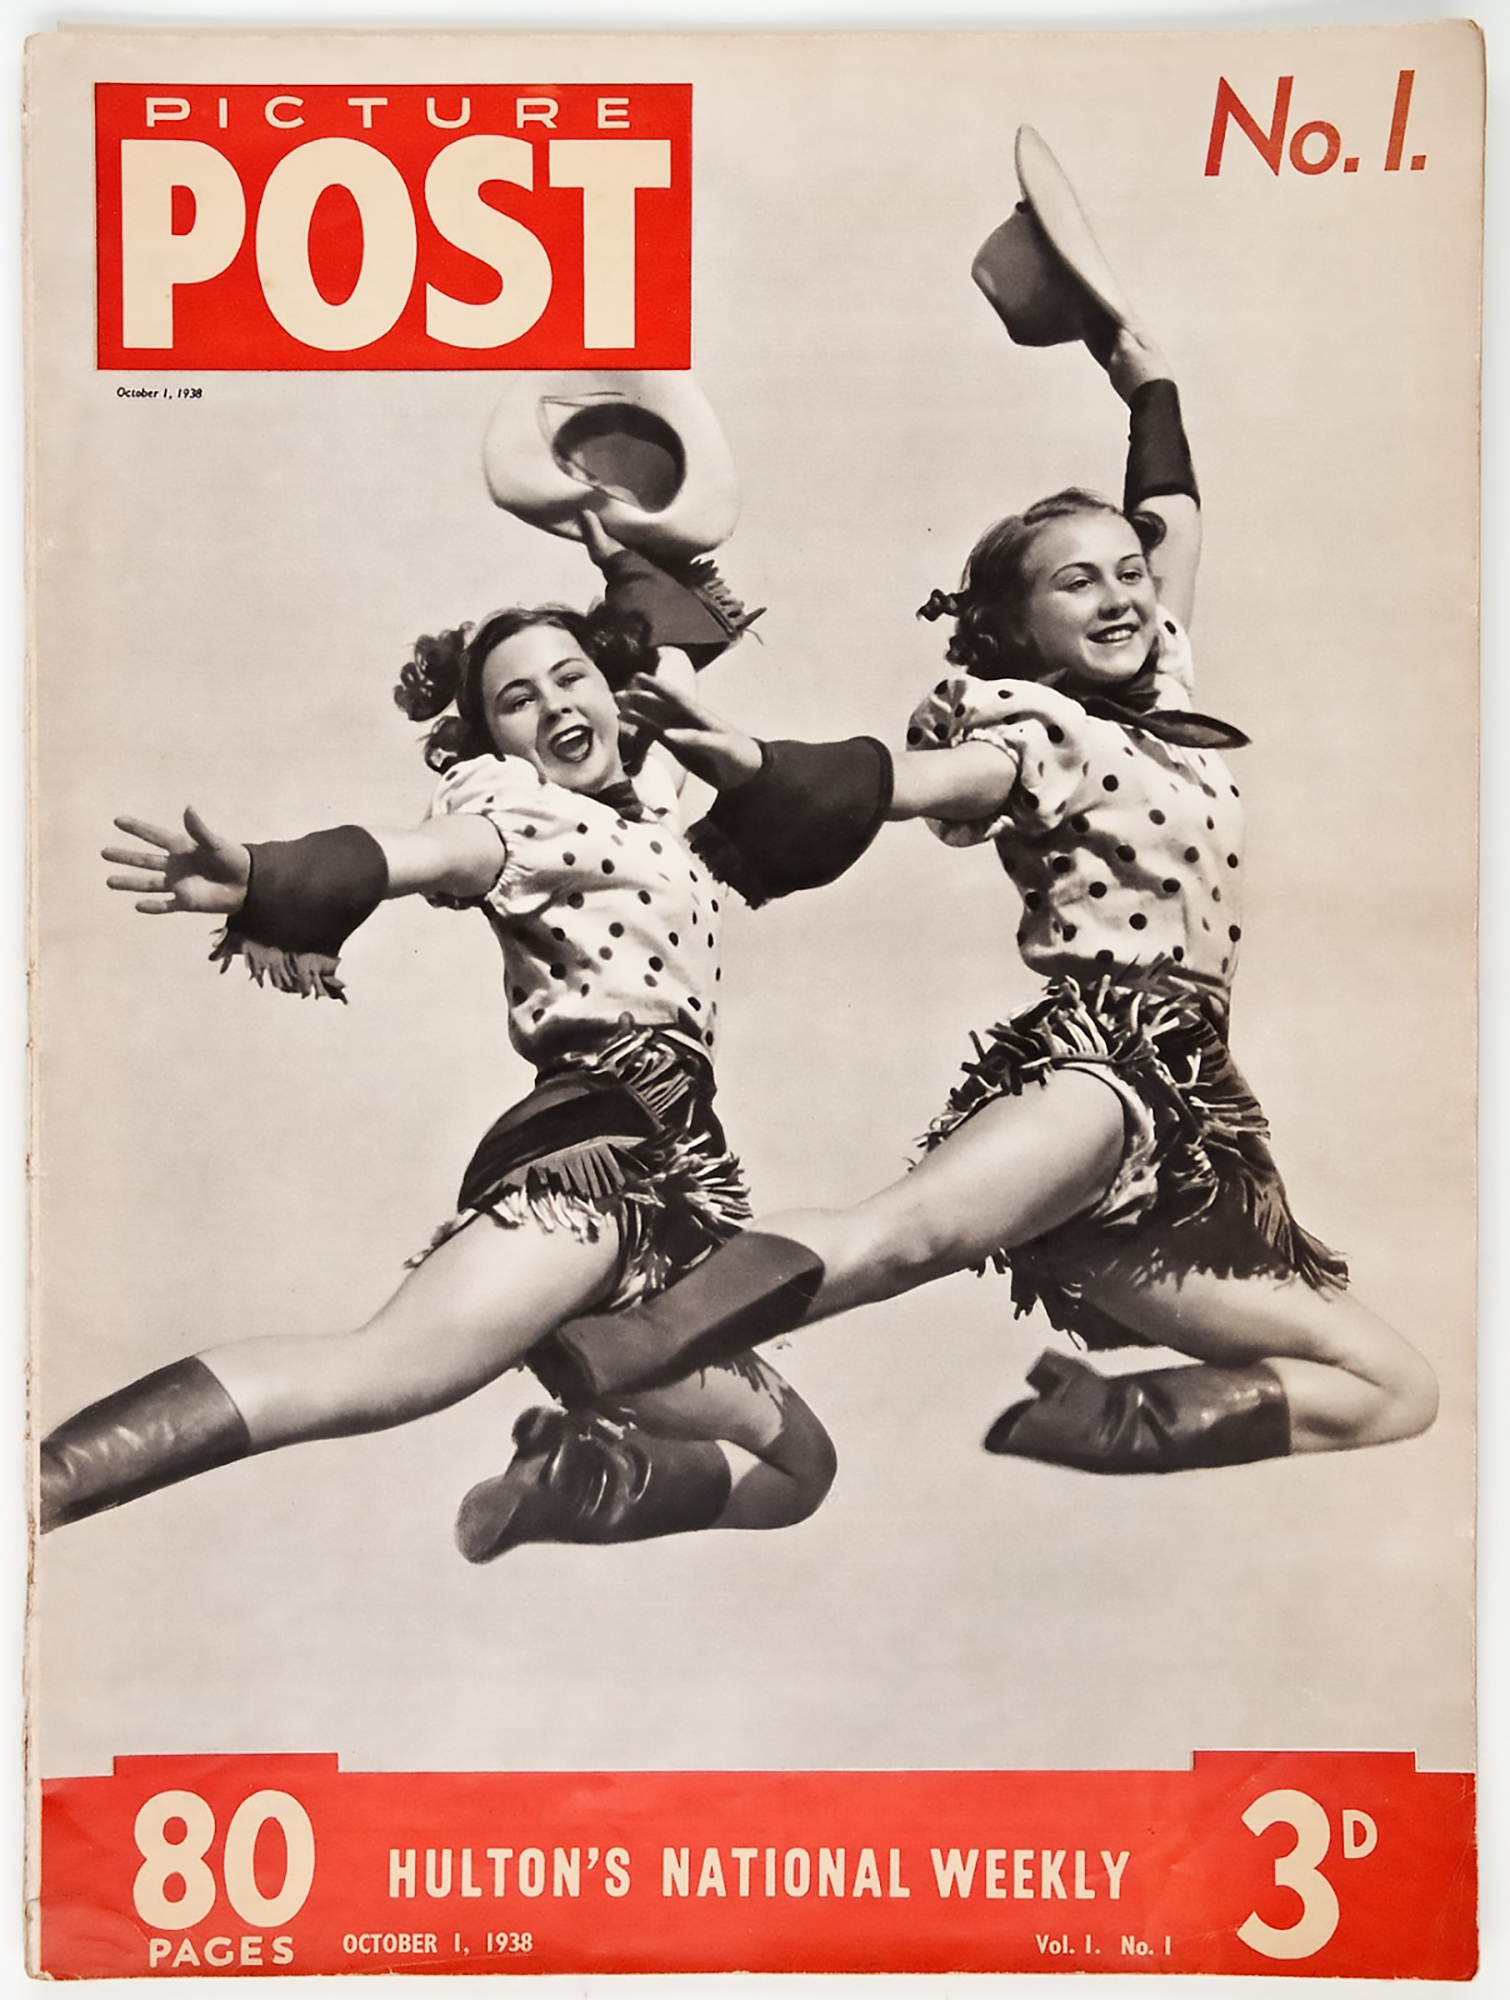 The first issue of Picture Post